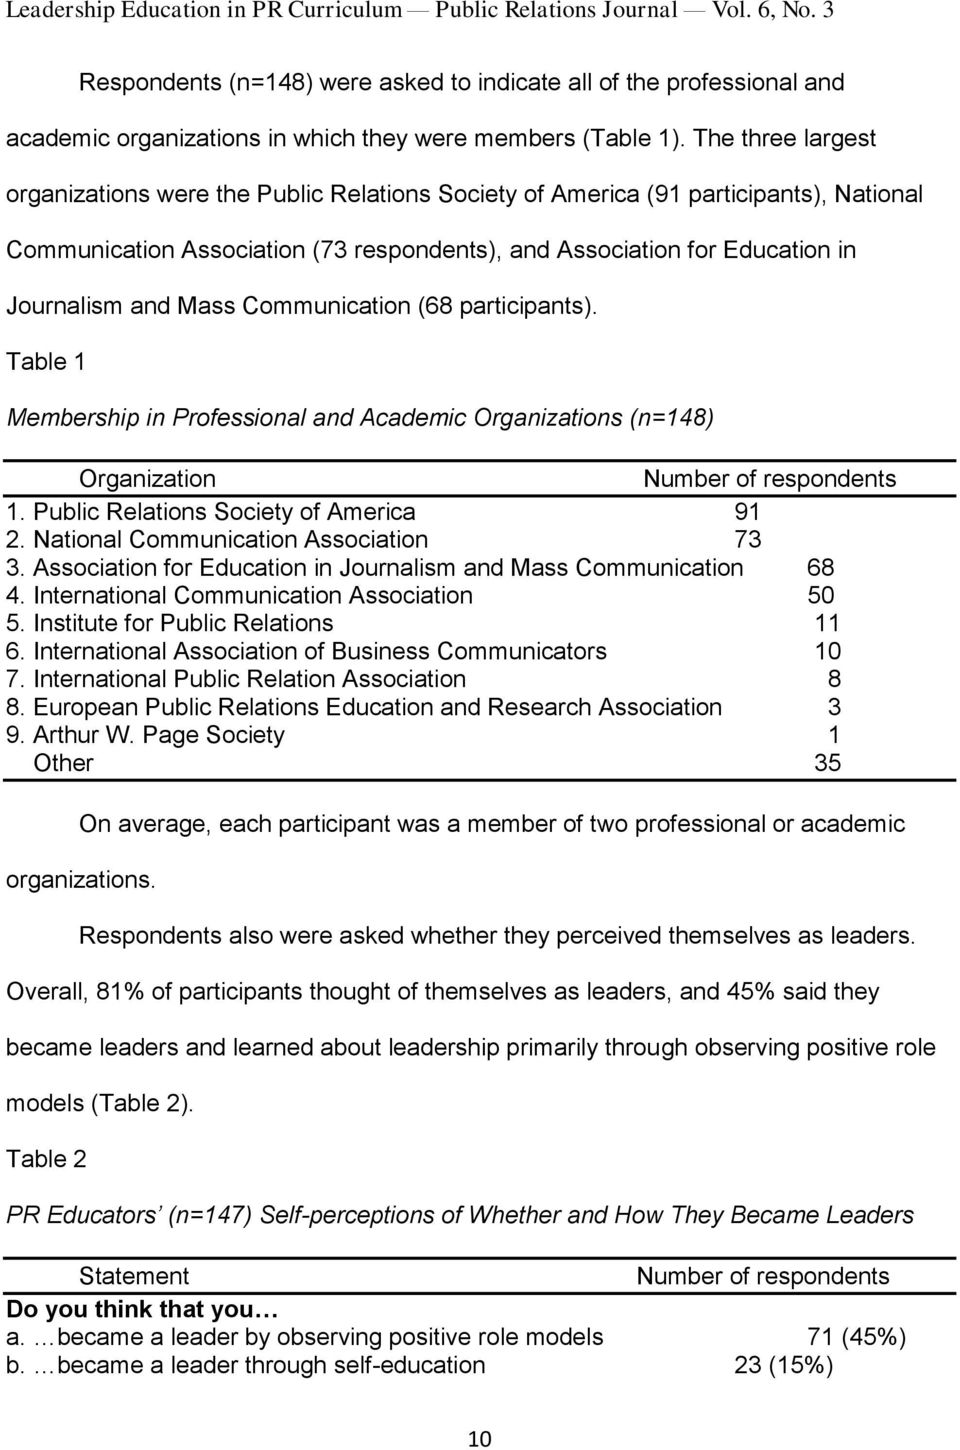 The three largest organizations were the Public Relations Society of America (91 participants), National Communication Association (73 respondents), and Association for Education in Journalism and